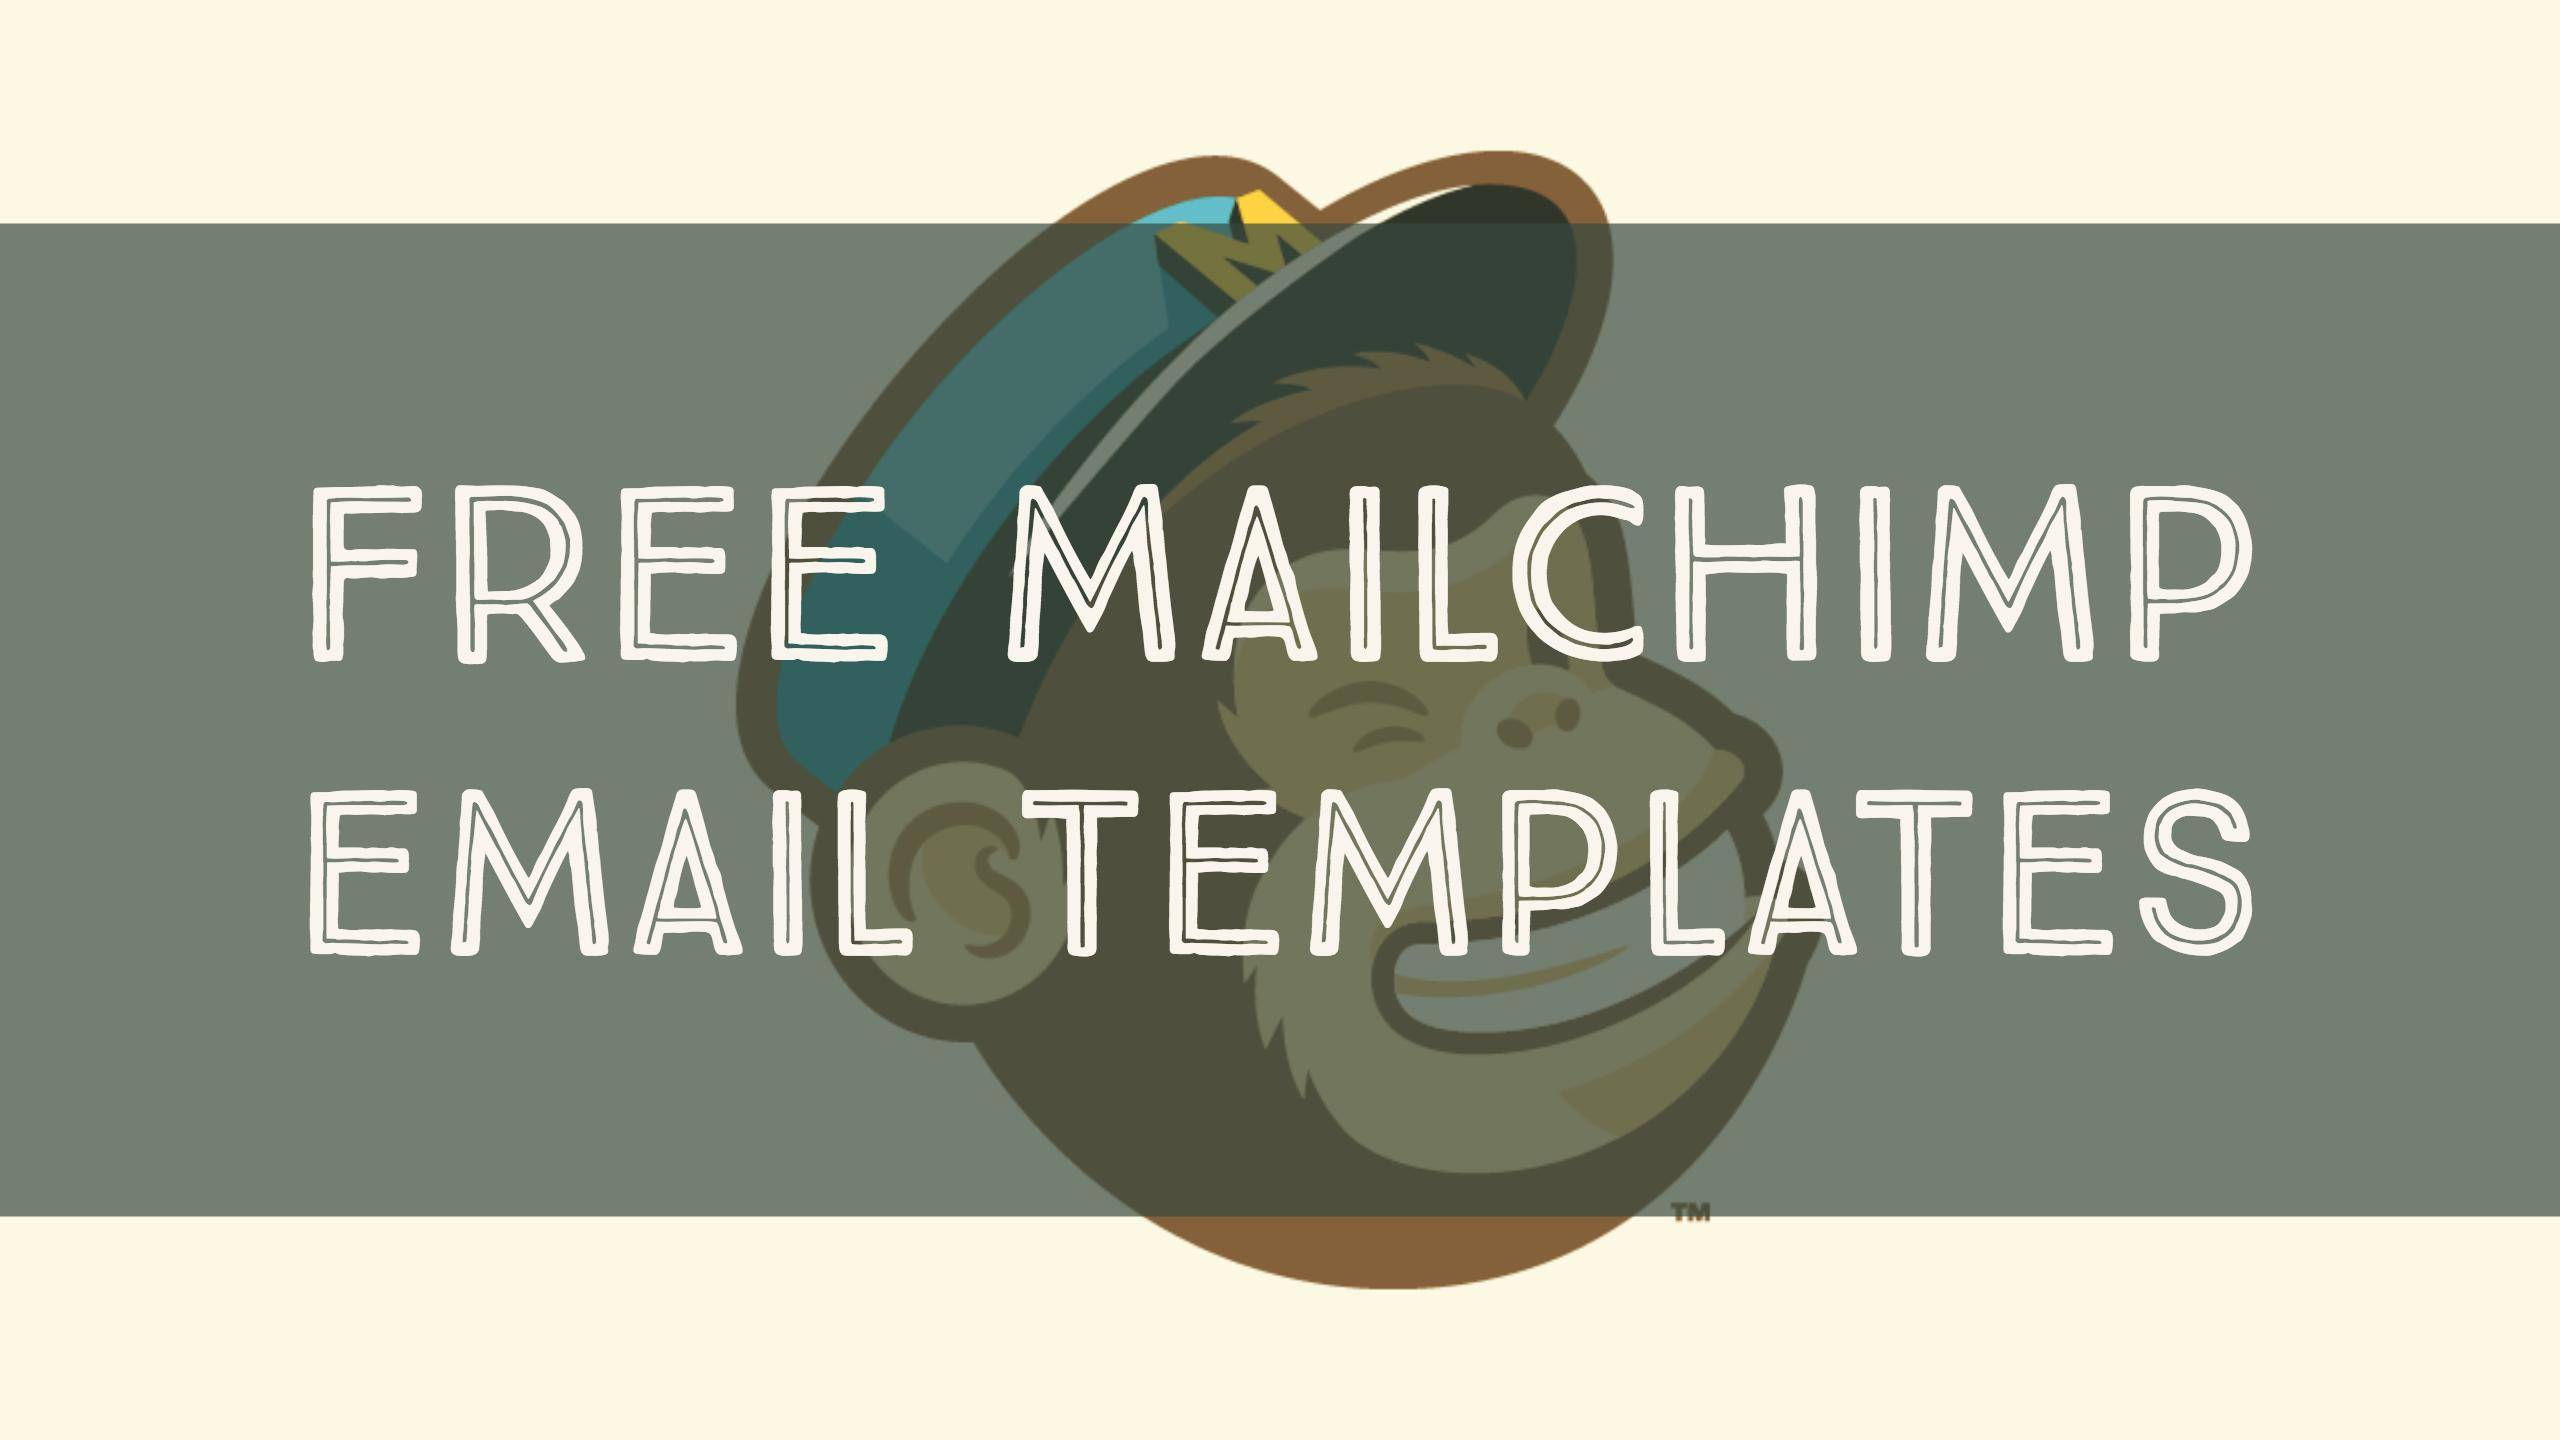 Mailchimp Free Email Templates